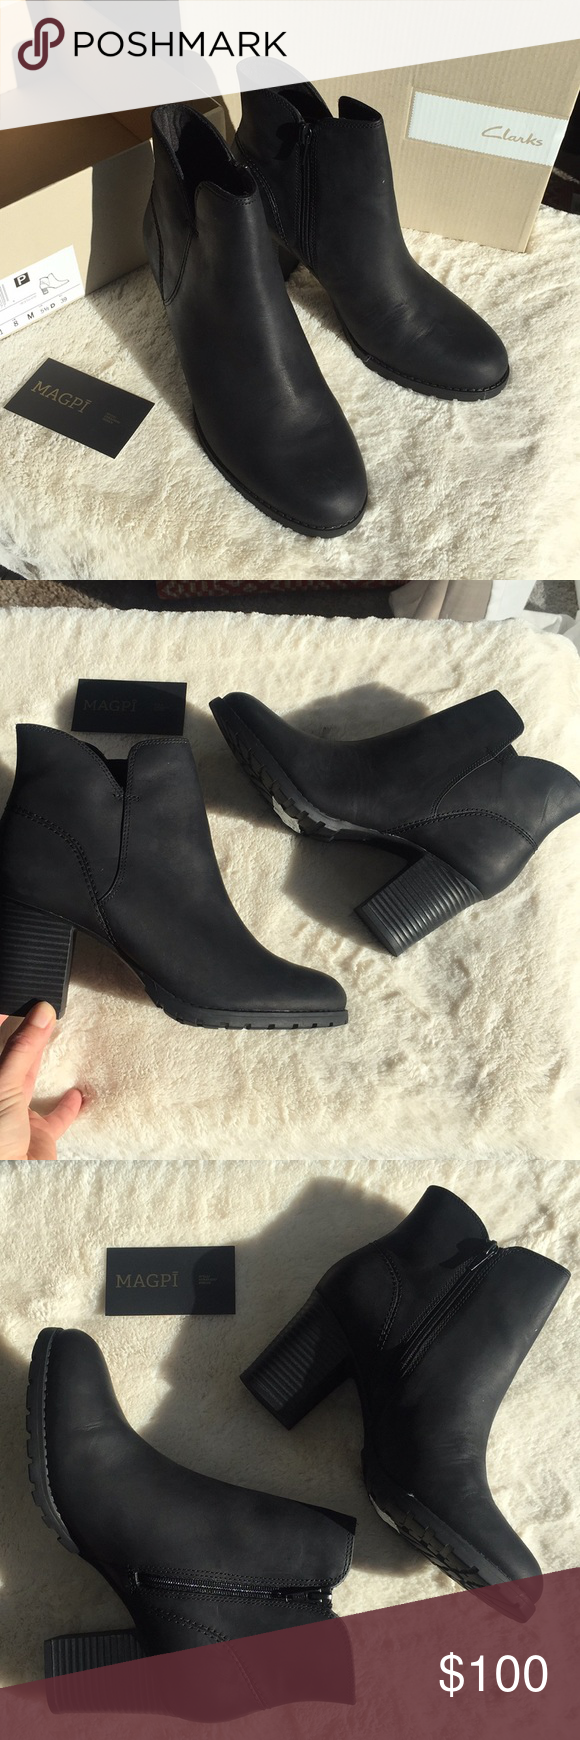 eecf435e3ec9e NWT Clarks Verona Trish Leather Heeled Ankle Boot Beautiful condition,  stacked heel, leather is thick and rich (very light 'life in a box' surface  scuffing, ...